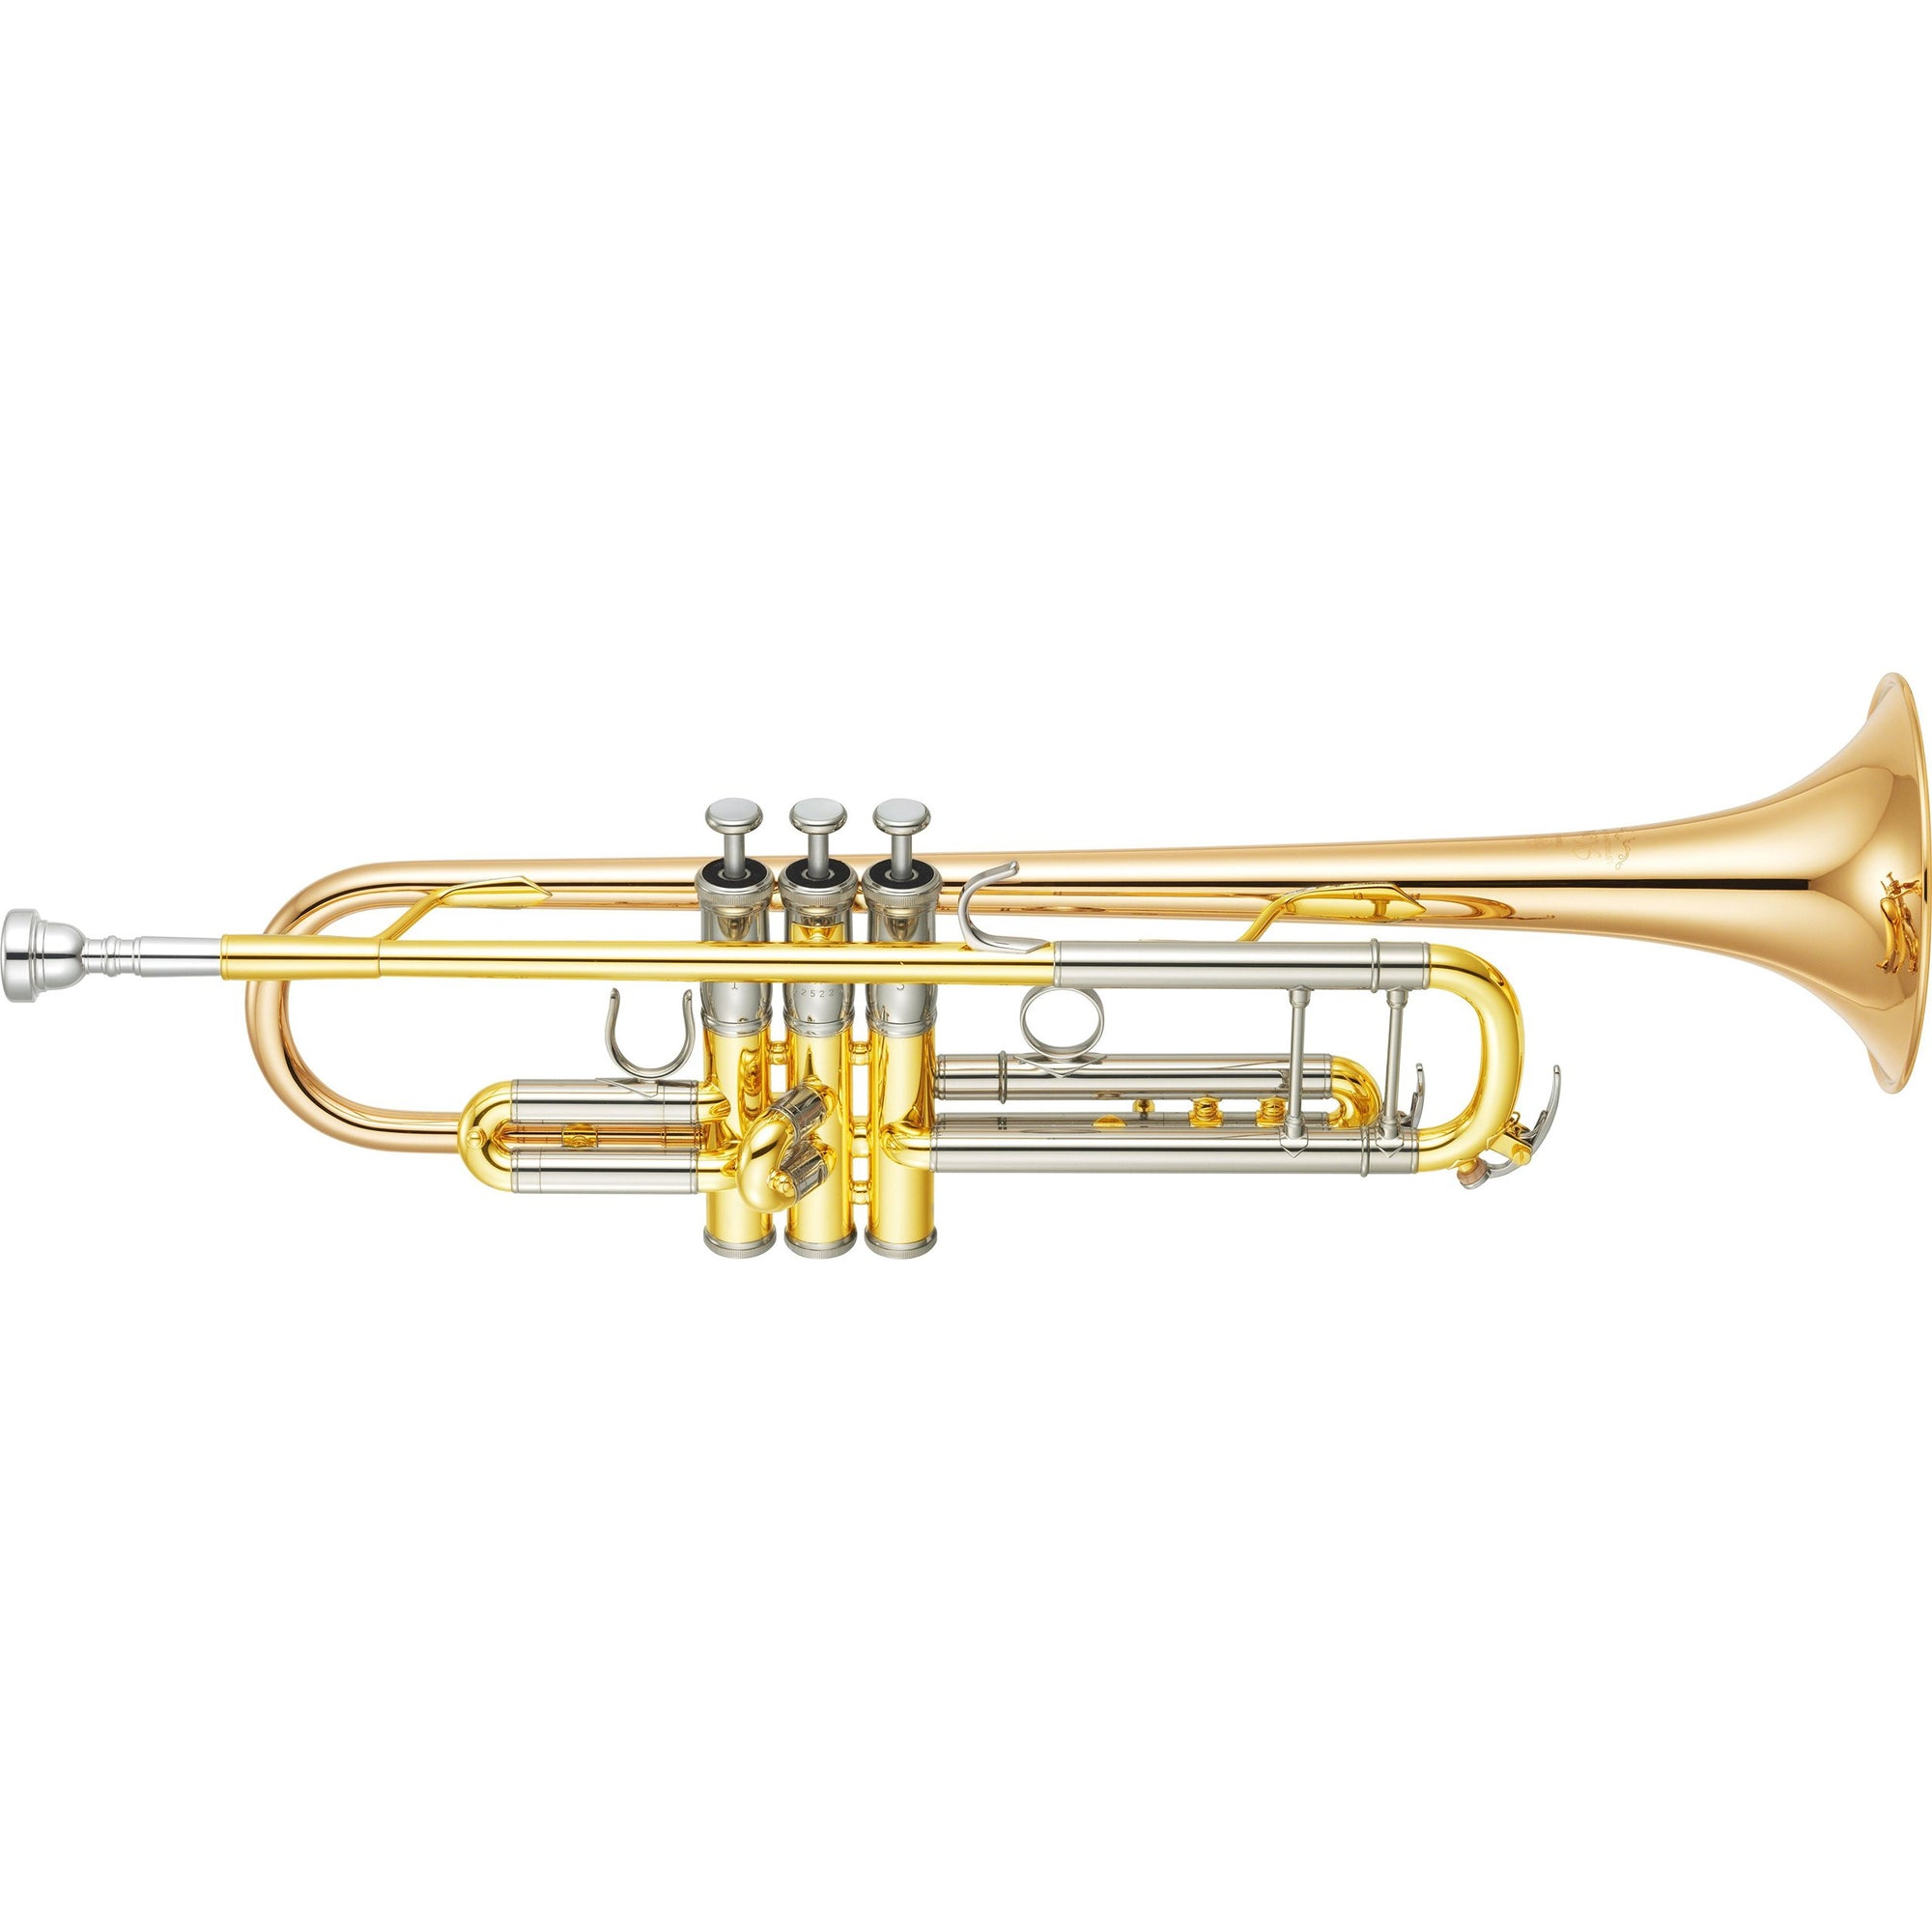 Yamaha - YTR-8335G - Custom Xeno Bb Trumpet-Trumpet-Yamaha-Music Elements